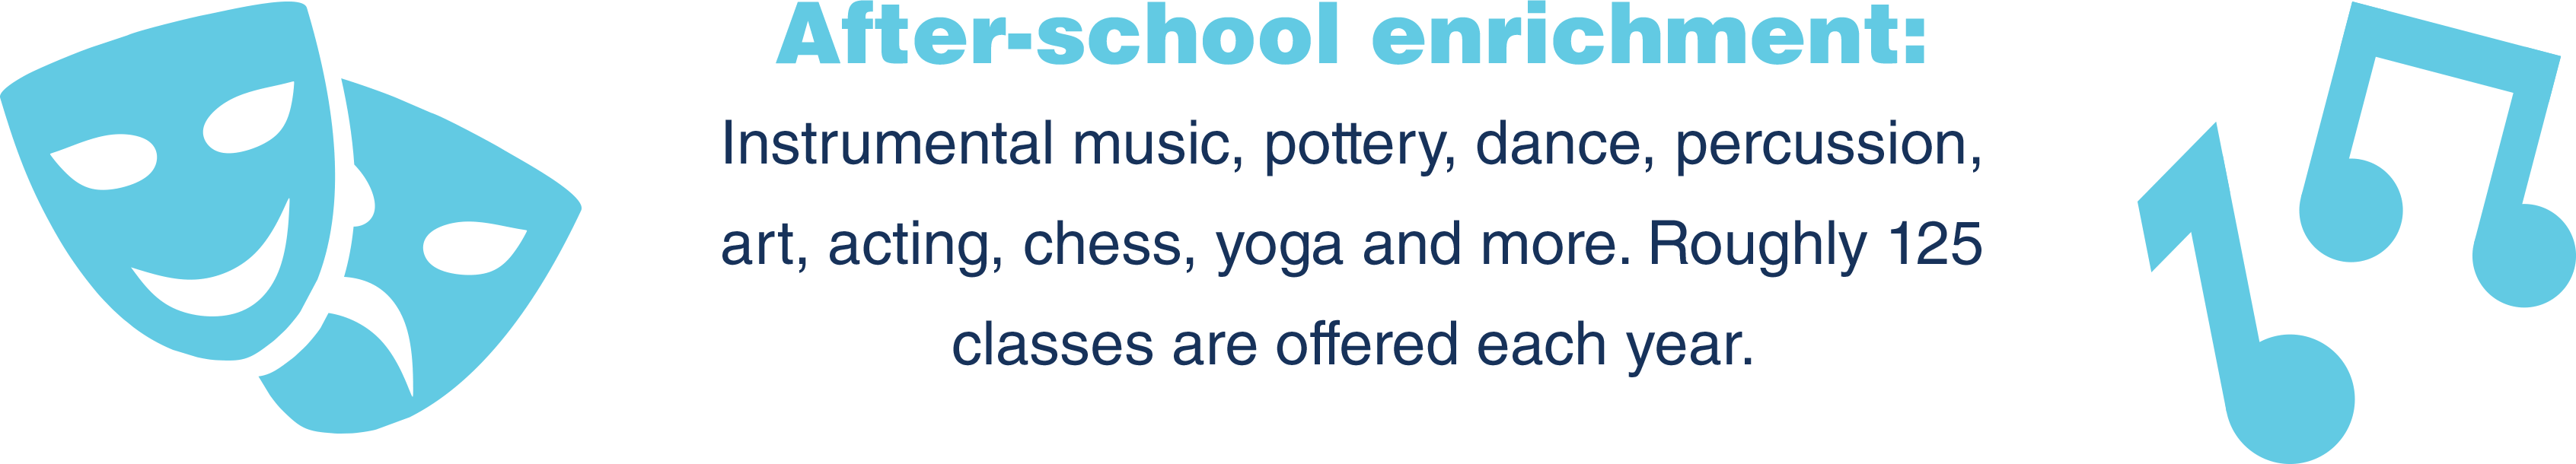 After-school enrichment: Instrumental music, pottery, dance, percussion, art, acting, chess, yoga and more. Roughly 125 classes are offered each year.